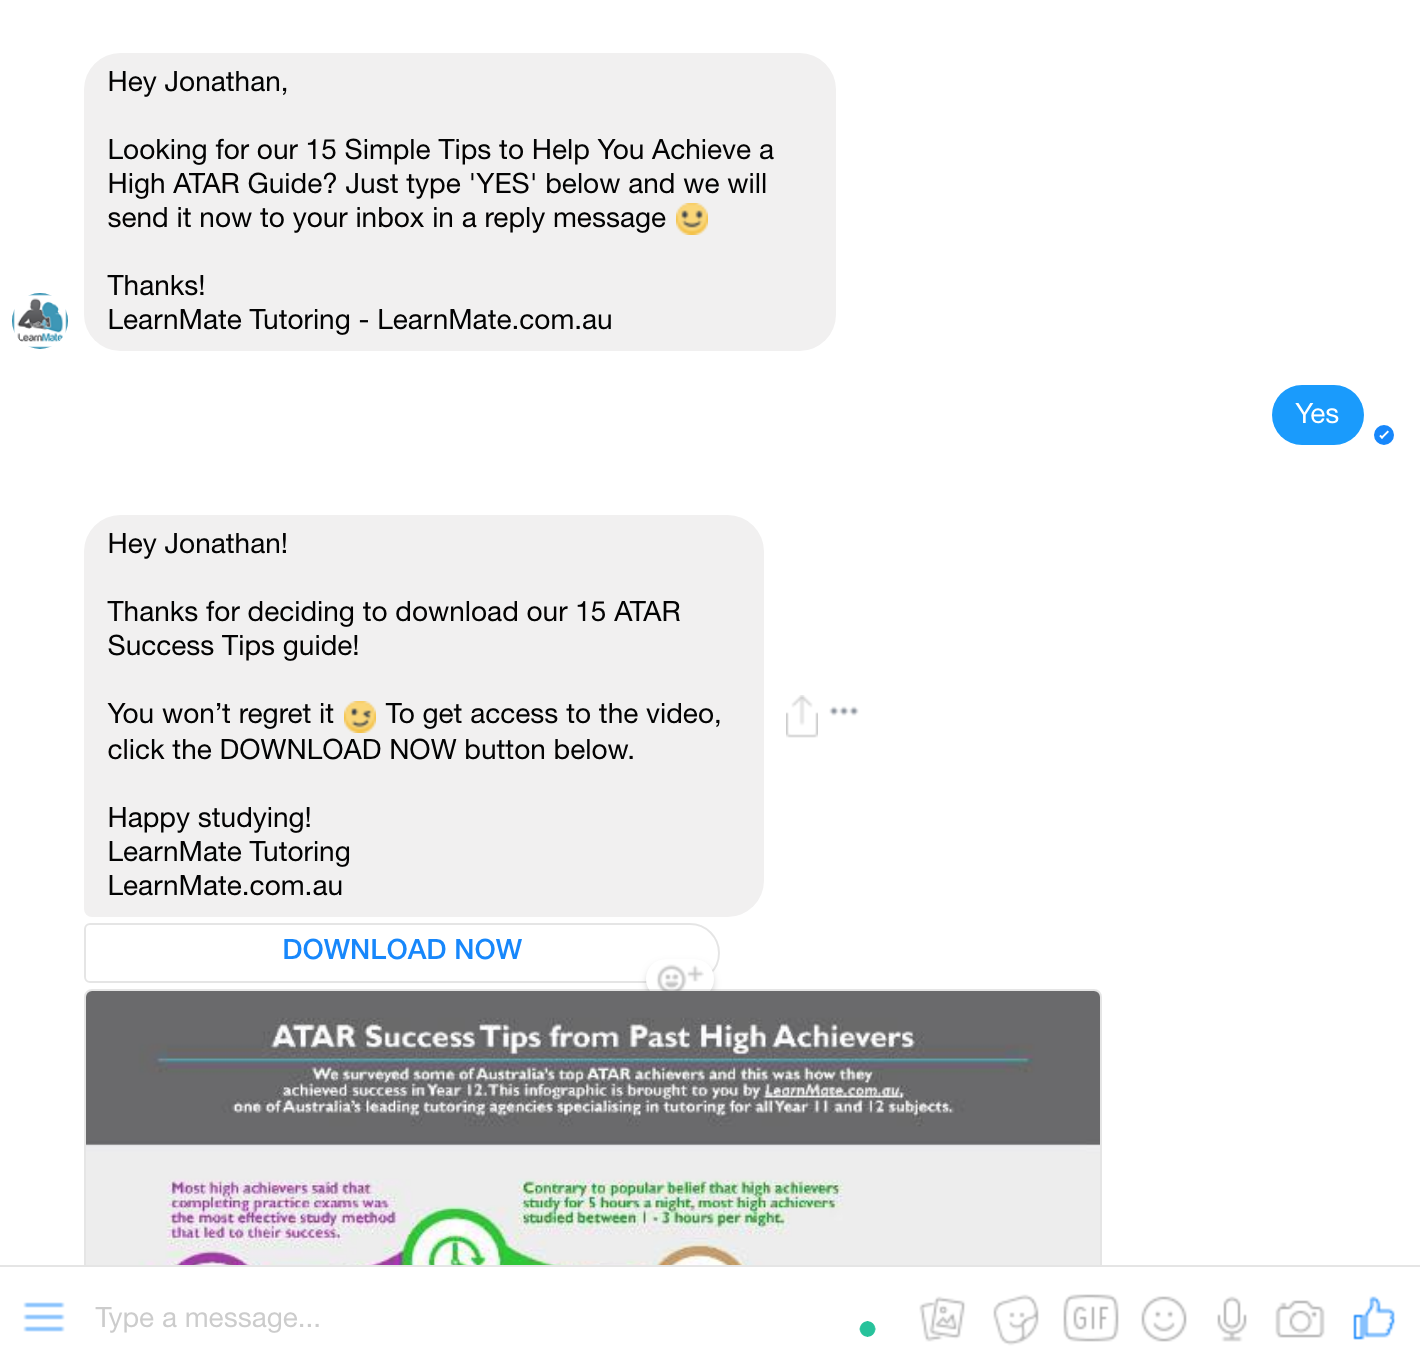 tutoring chatbot offering tips to engage potential client